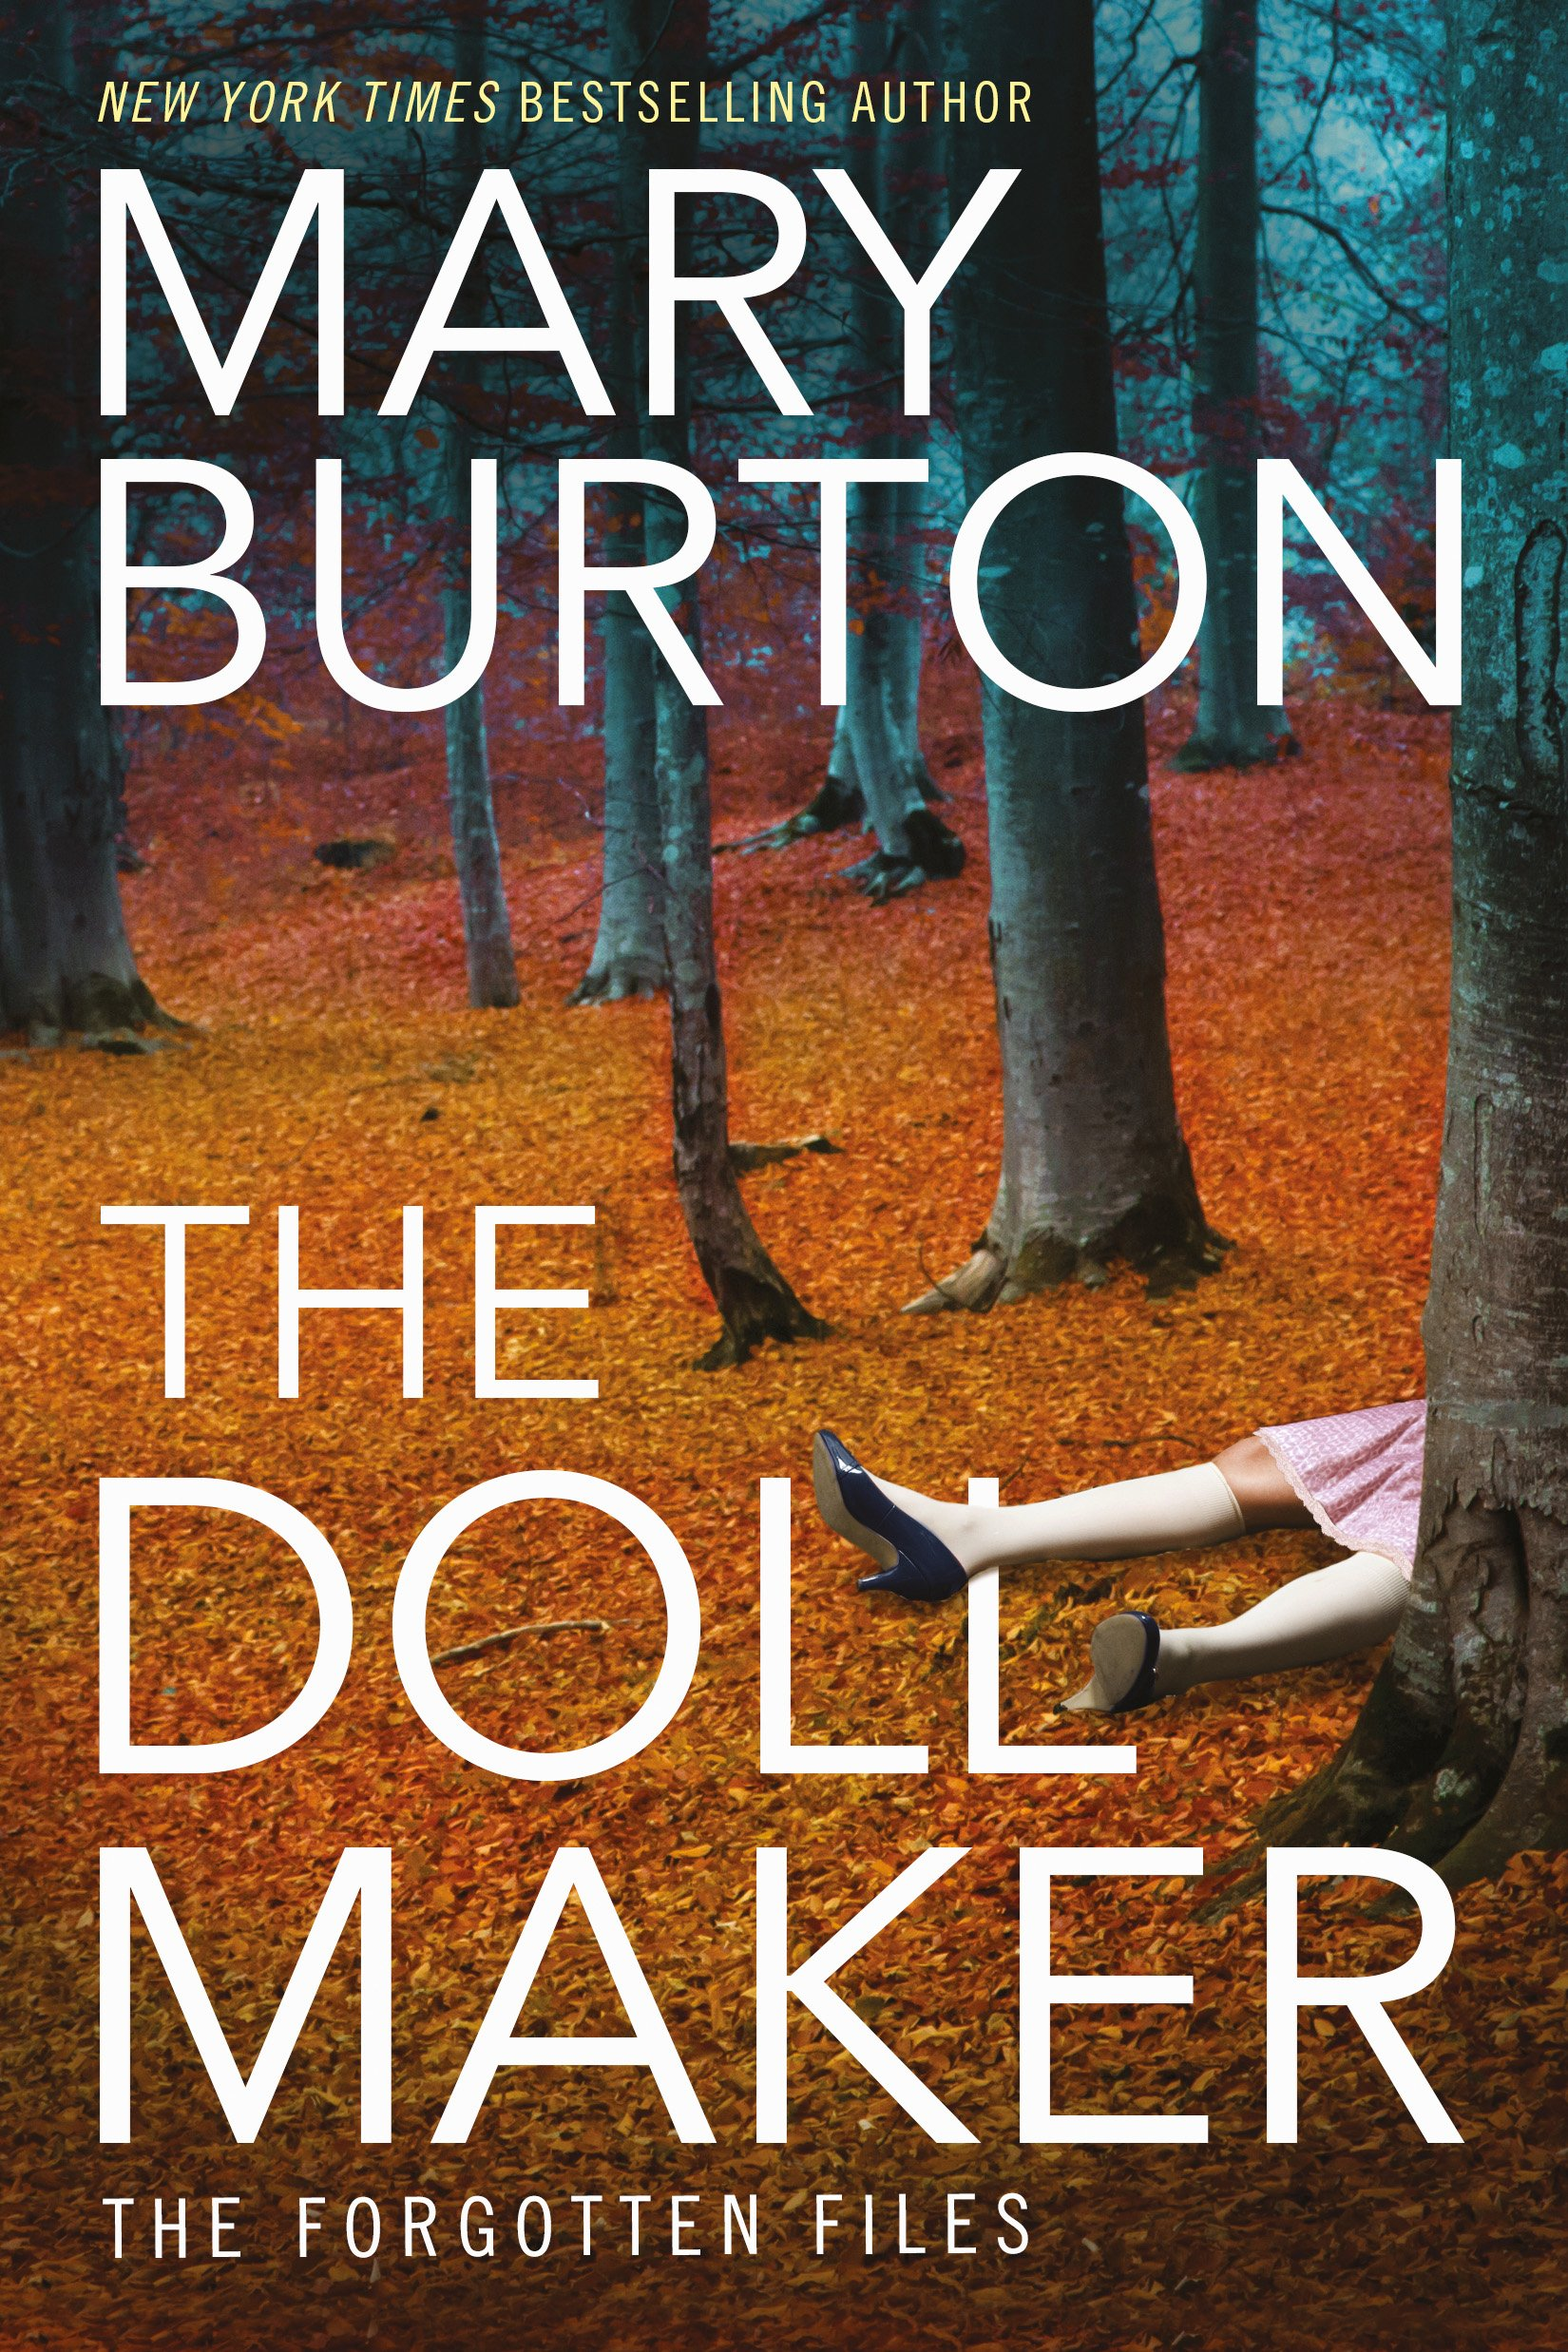 Cover of Mary Burton's THE DOLLMAKER